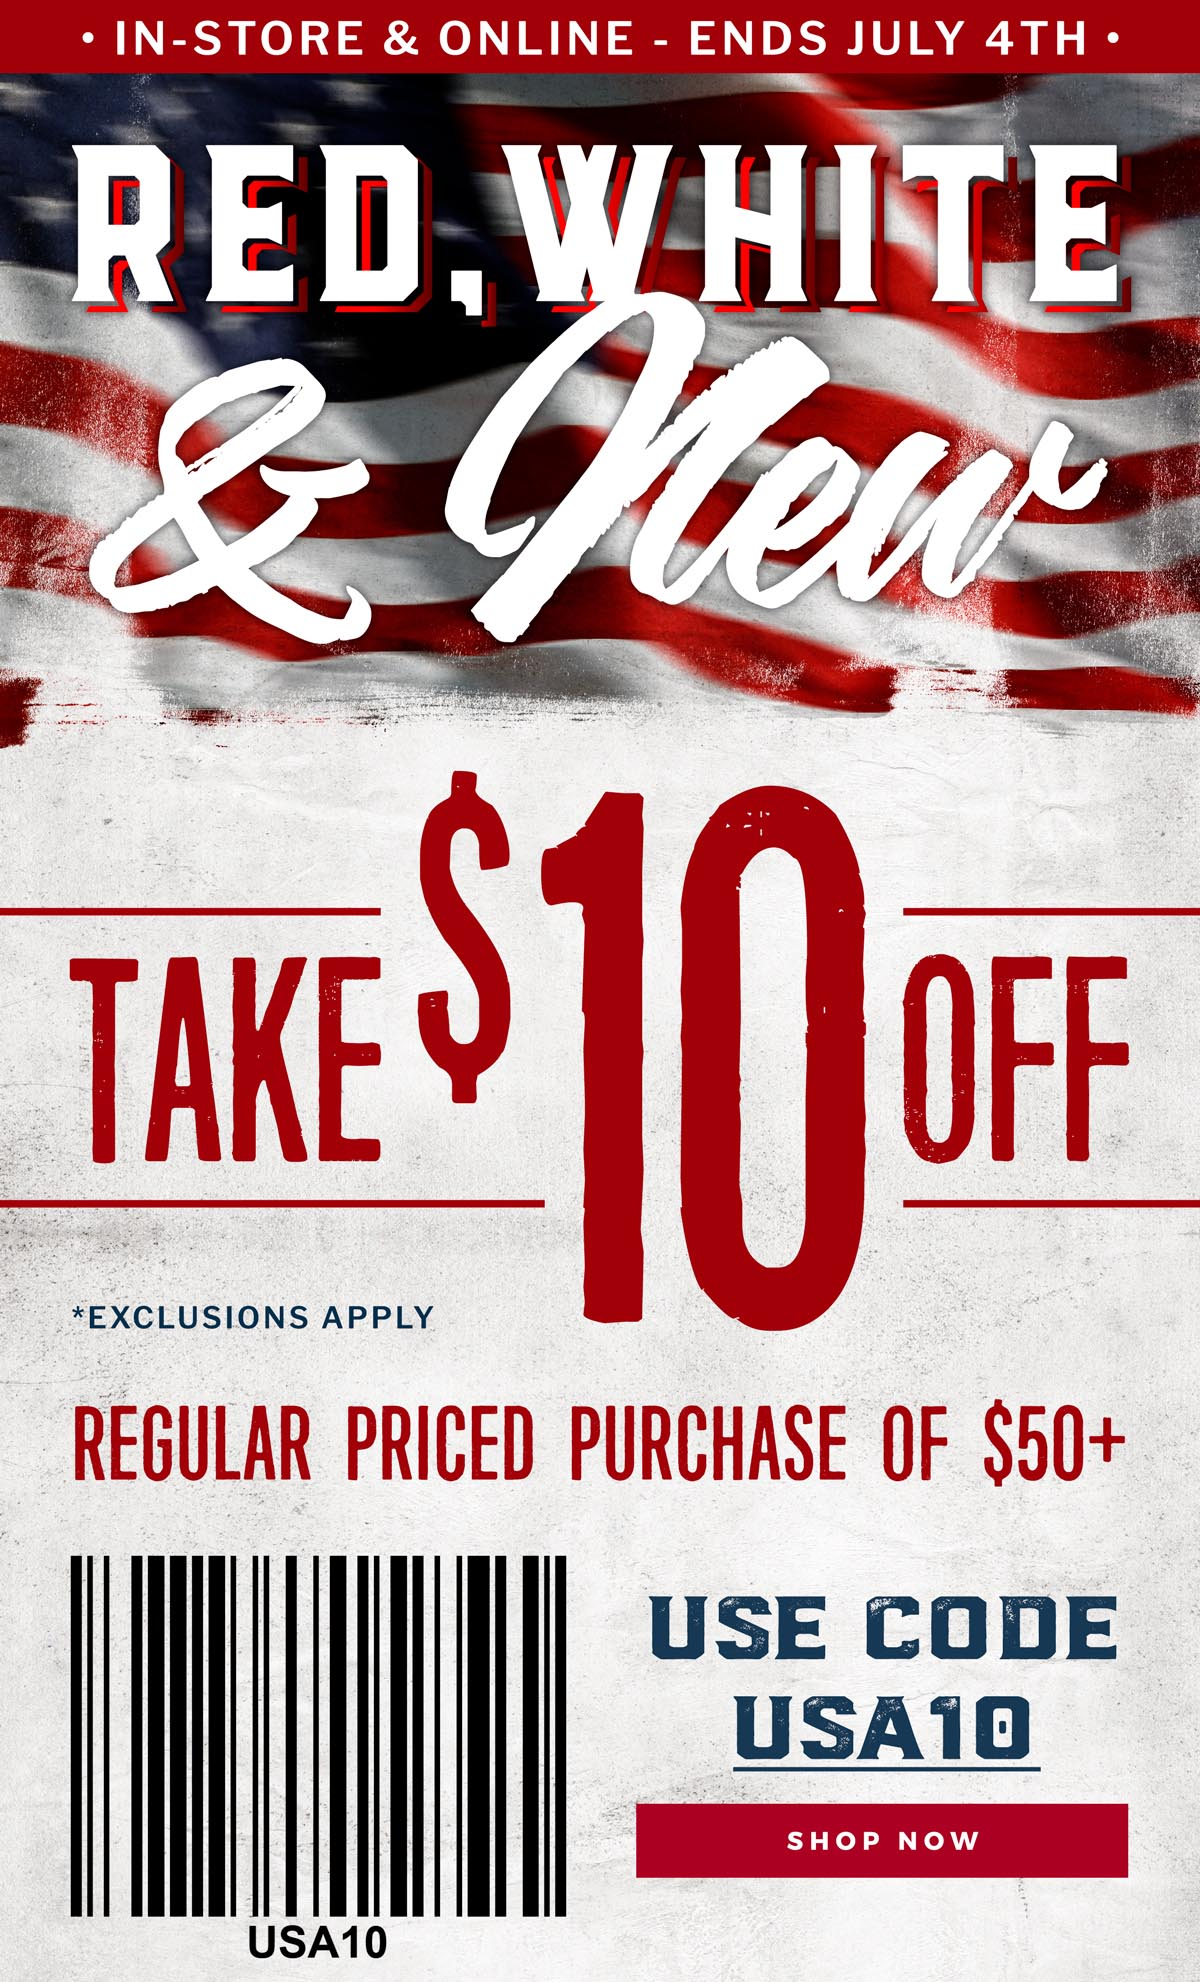 Use Code USA10 to Save $10 off $50